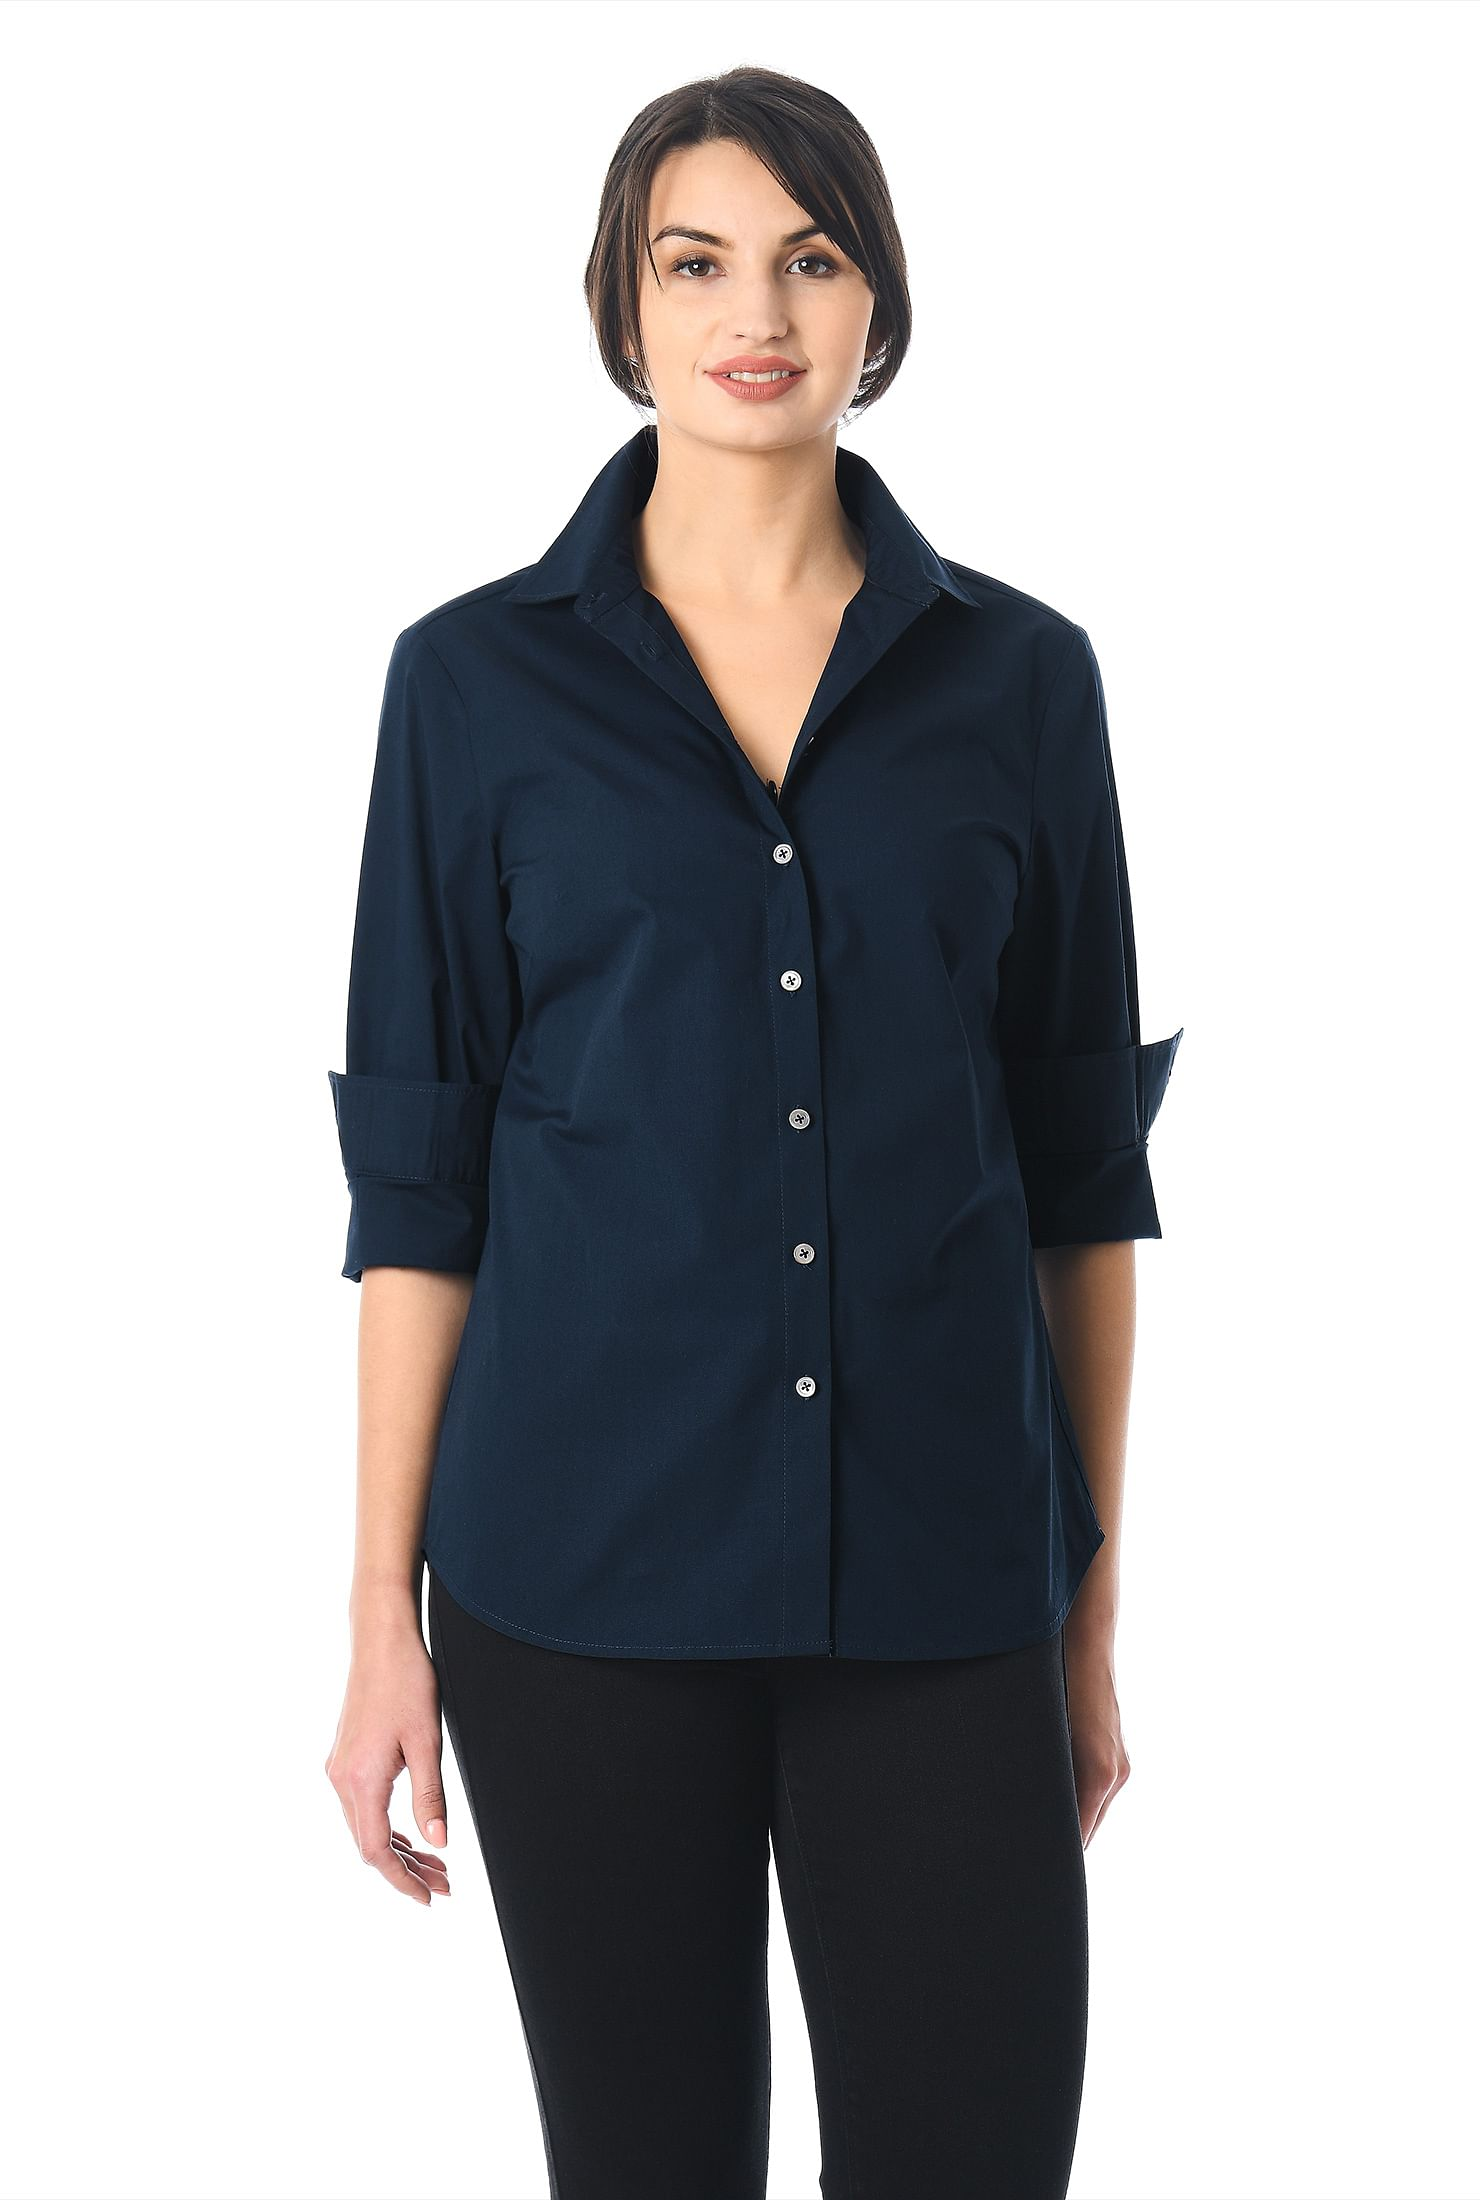 eShakti Women's Cotton poplin slim fit button-up shirt